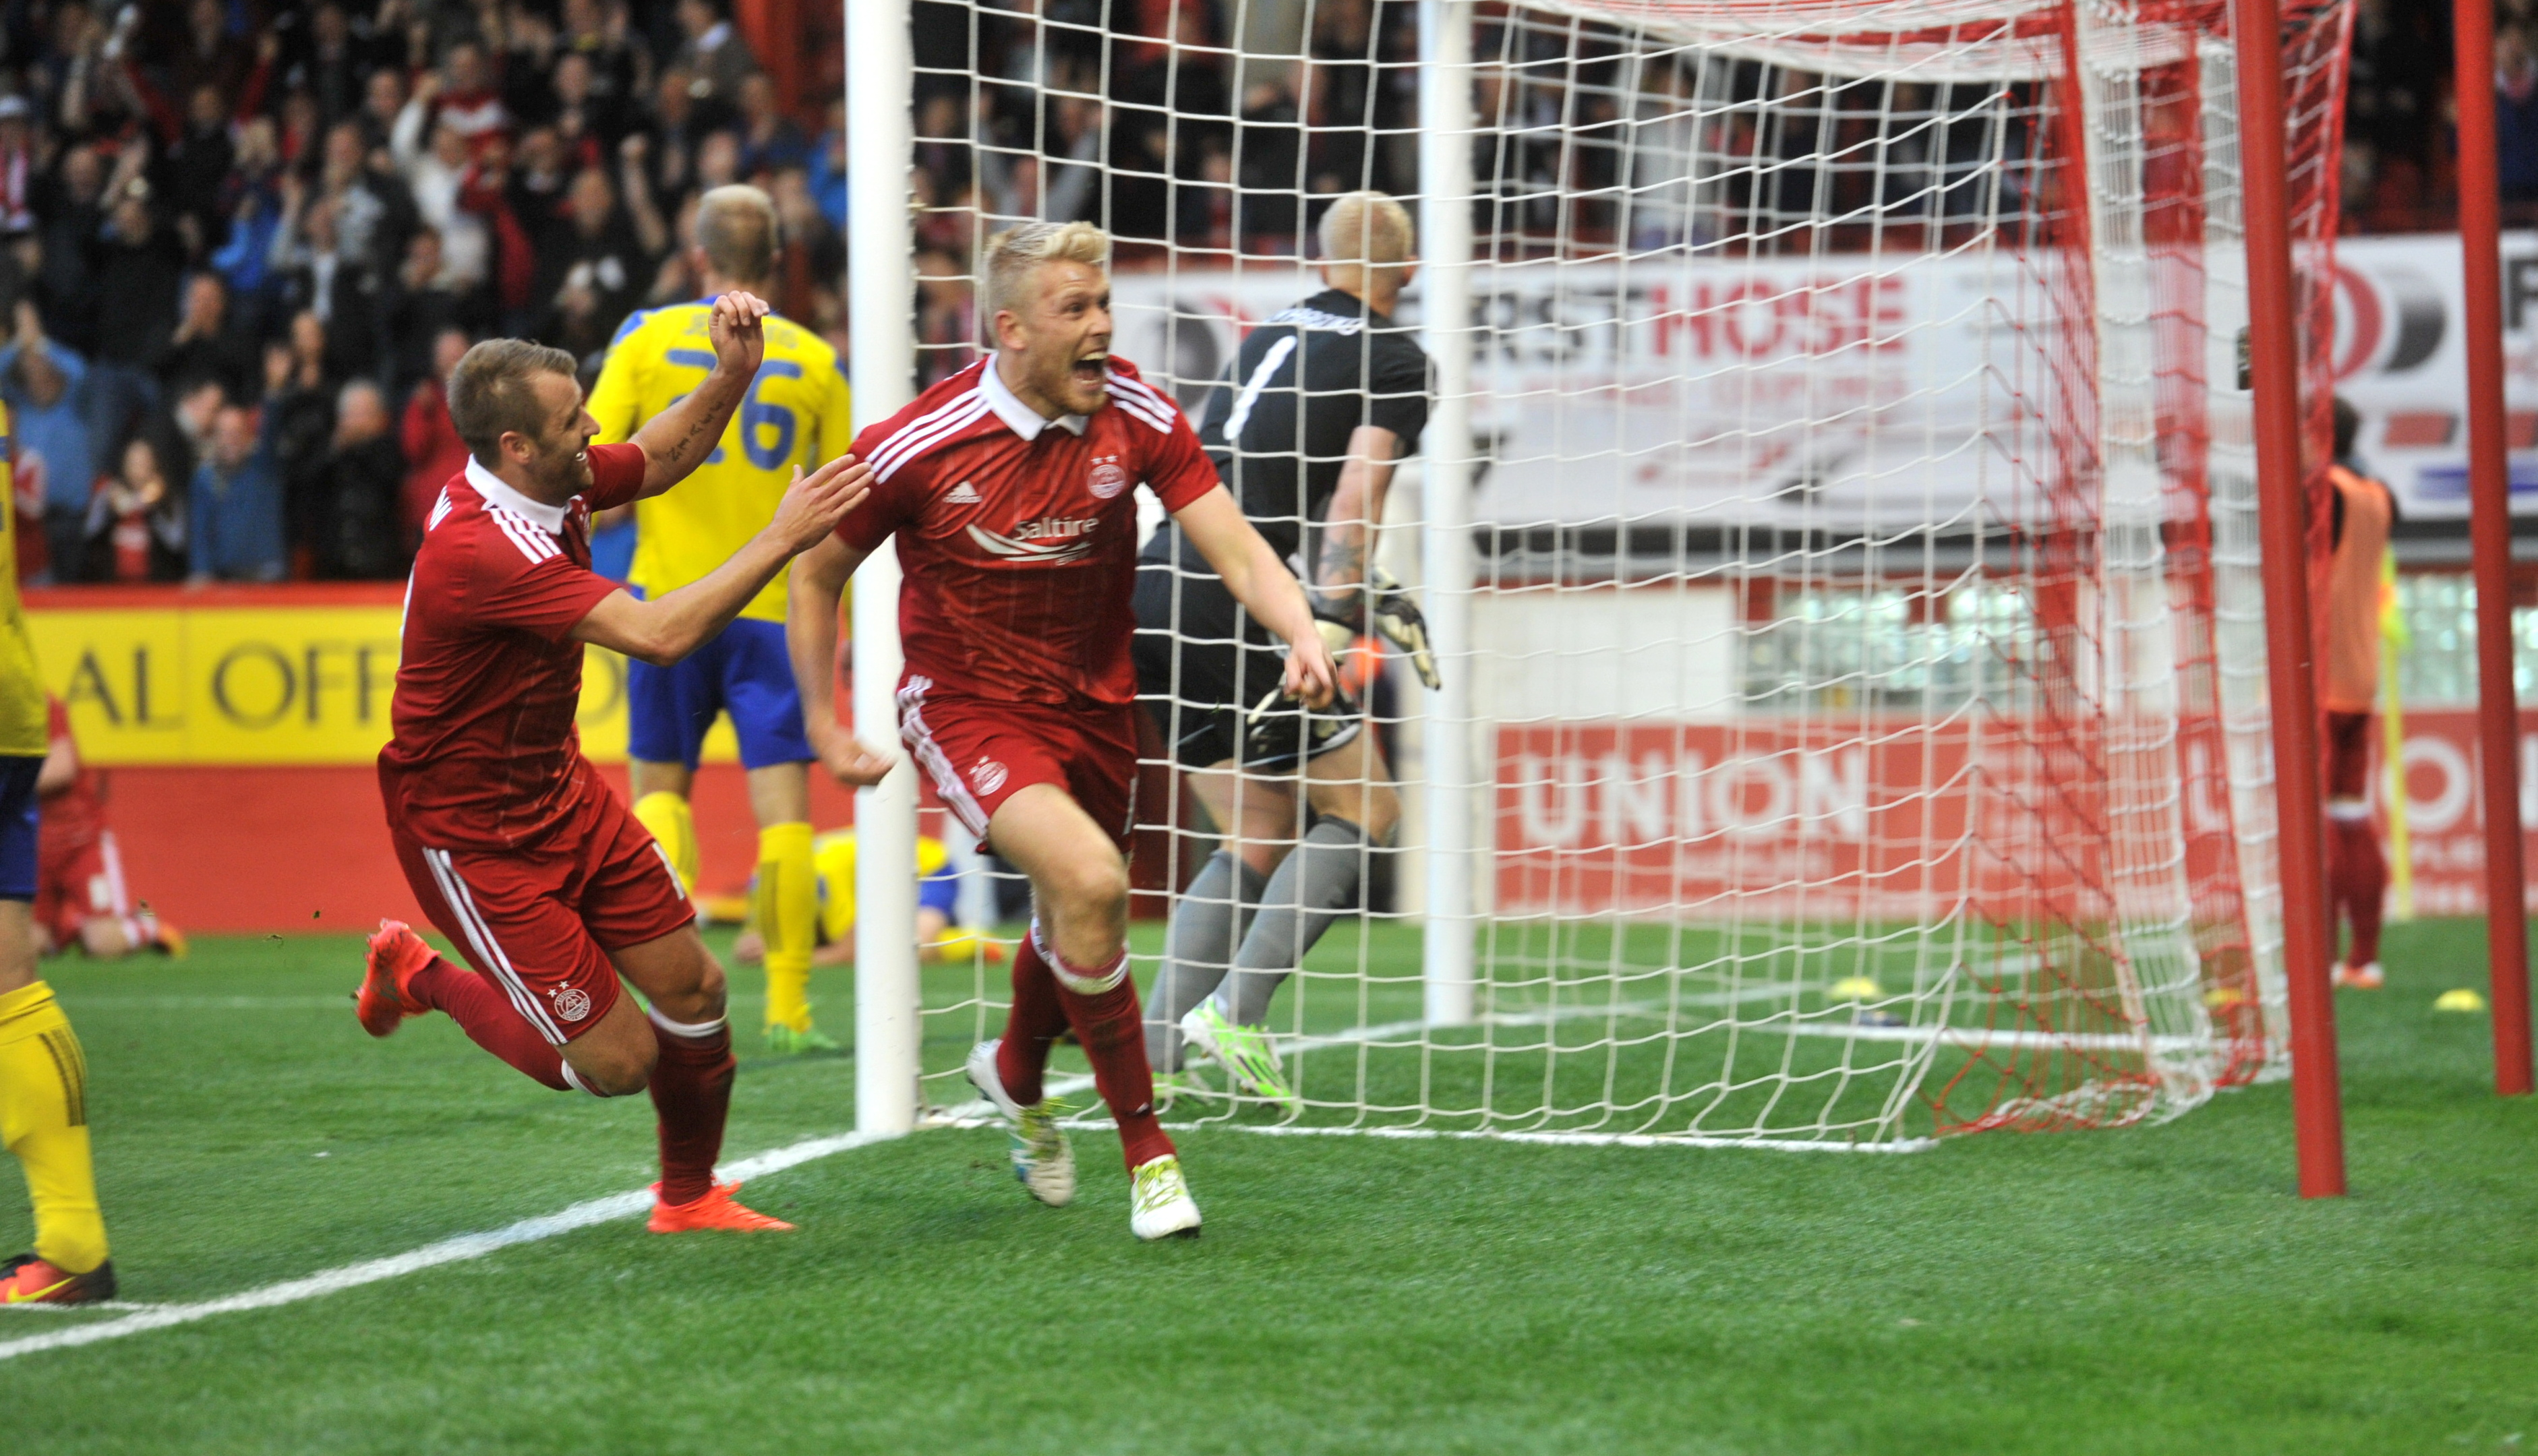 Striker Jayden Stockley scoring against Ventspils in the Europa League - the last European home game where the Dons didn't concede.